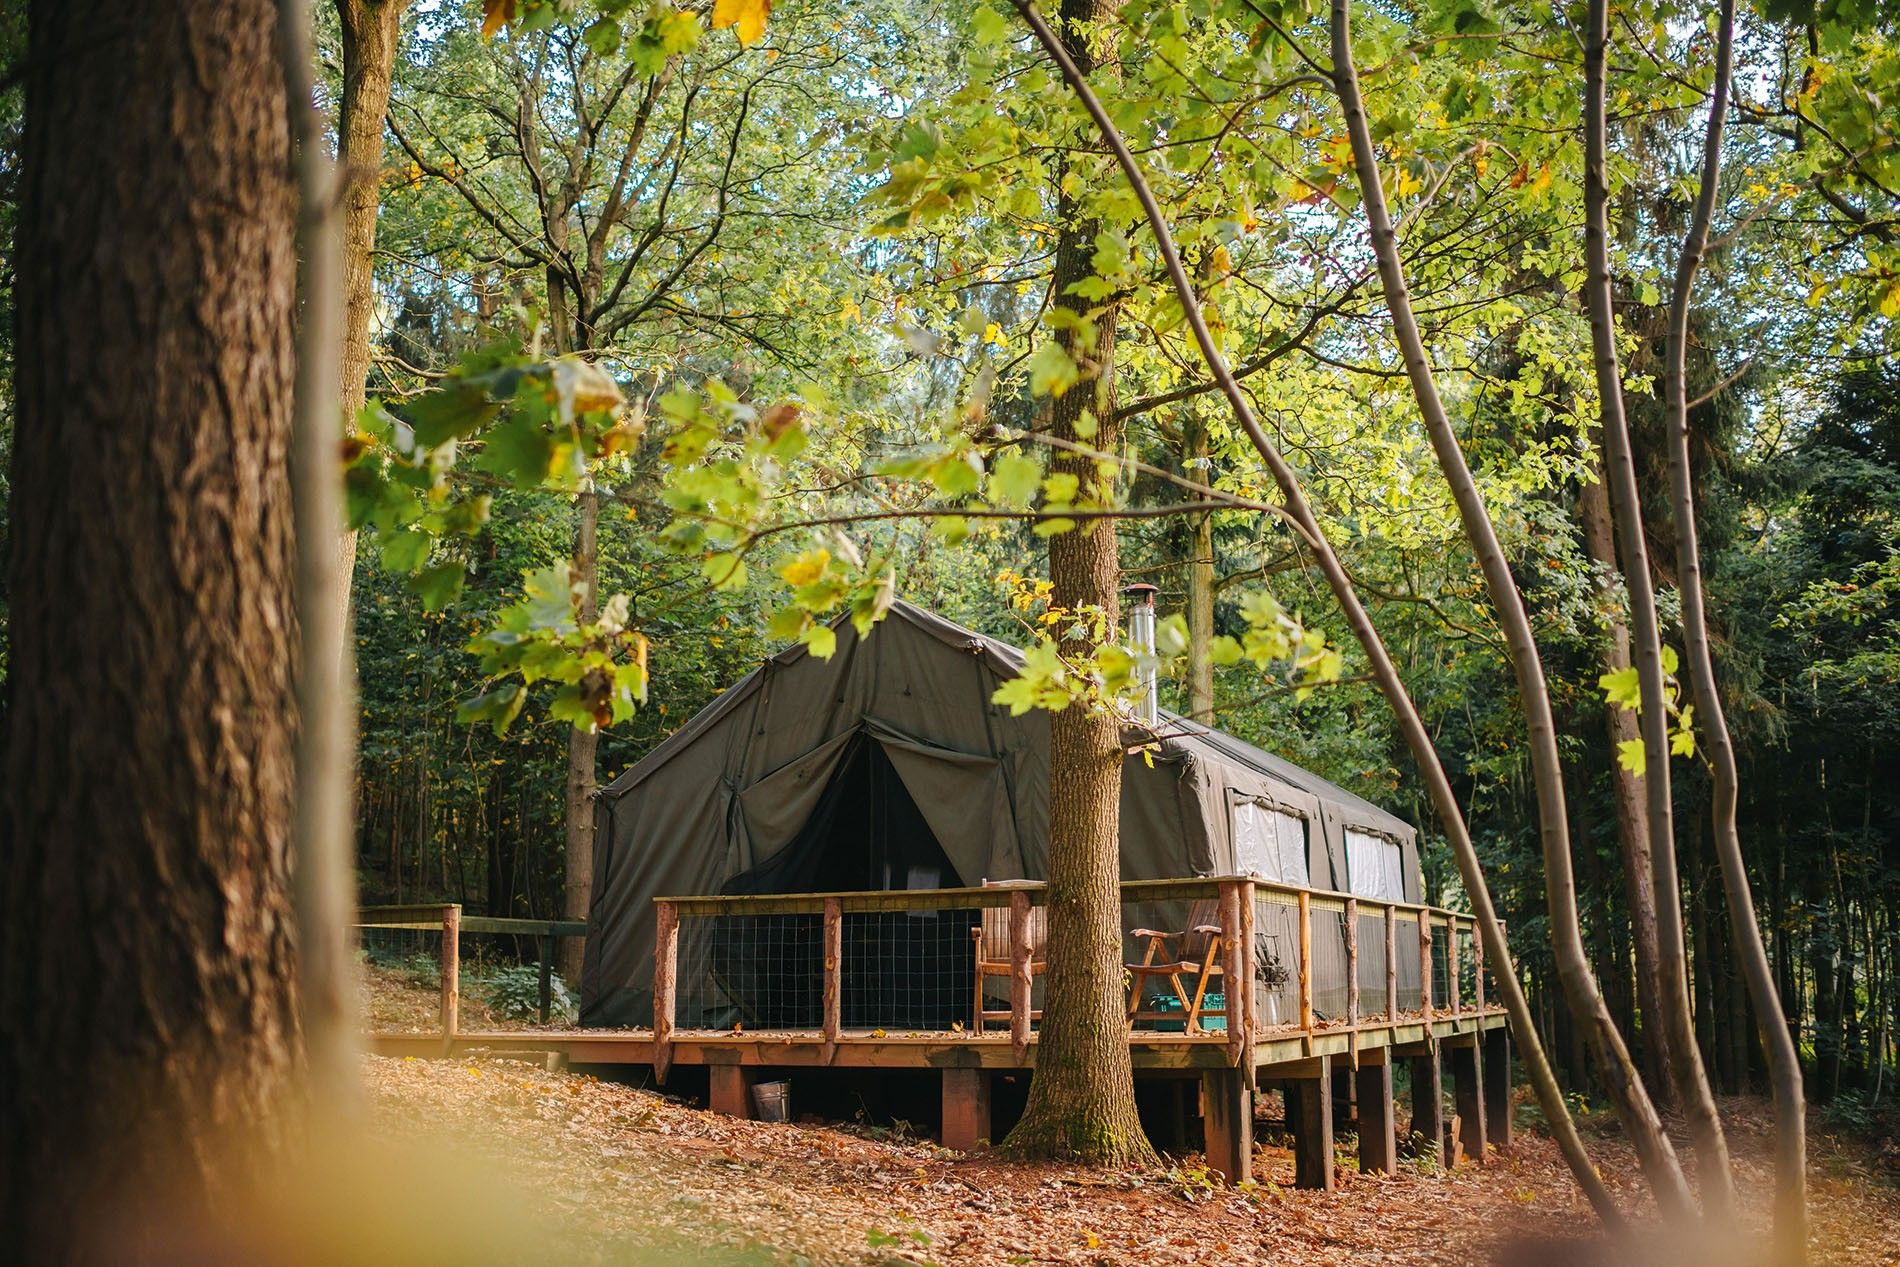 For the chance to switch off and bond as a family, Quality Unearthed offer off-grid glamping in an ex-military safari tent.